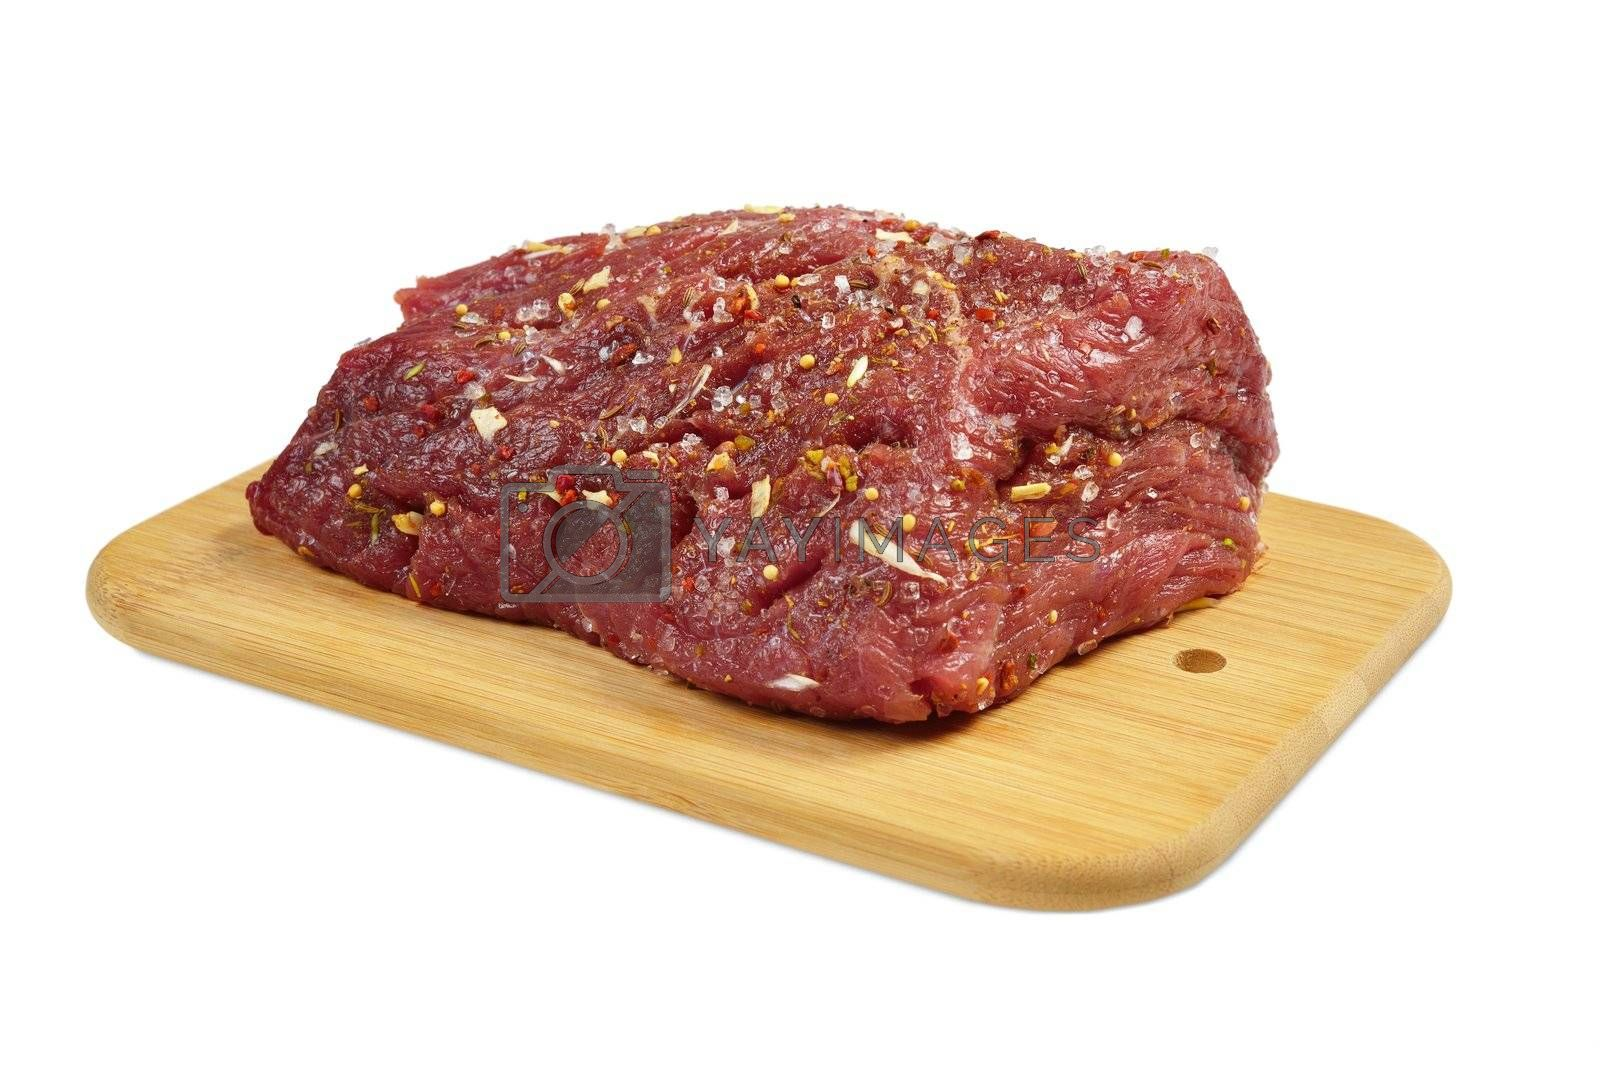 Beef on a wooden board with spices. Isolated on white